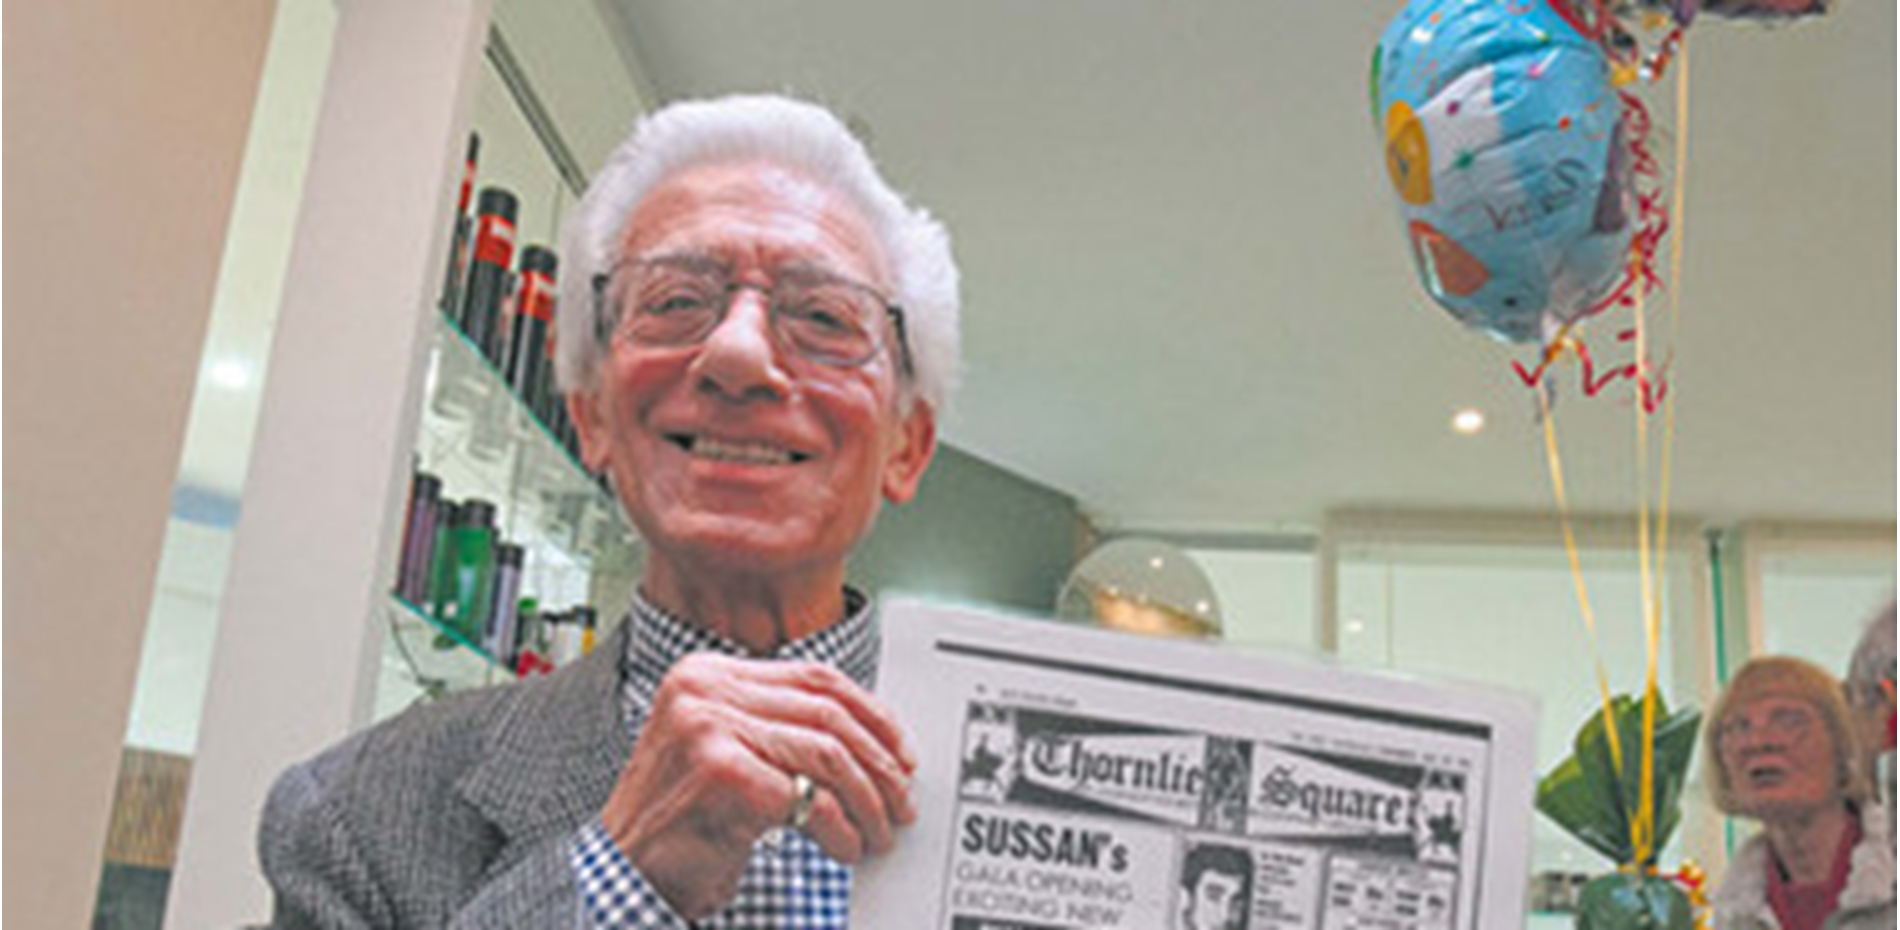 Local hairdessing icon clocks up 50 years of cutting (Examiner, 30 July) Main Image